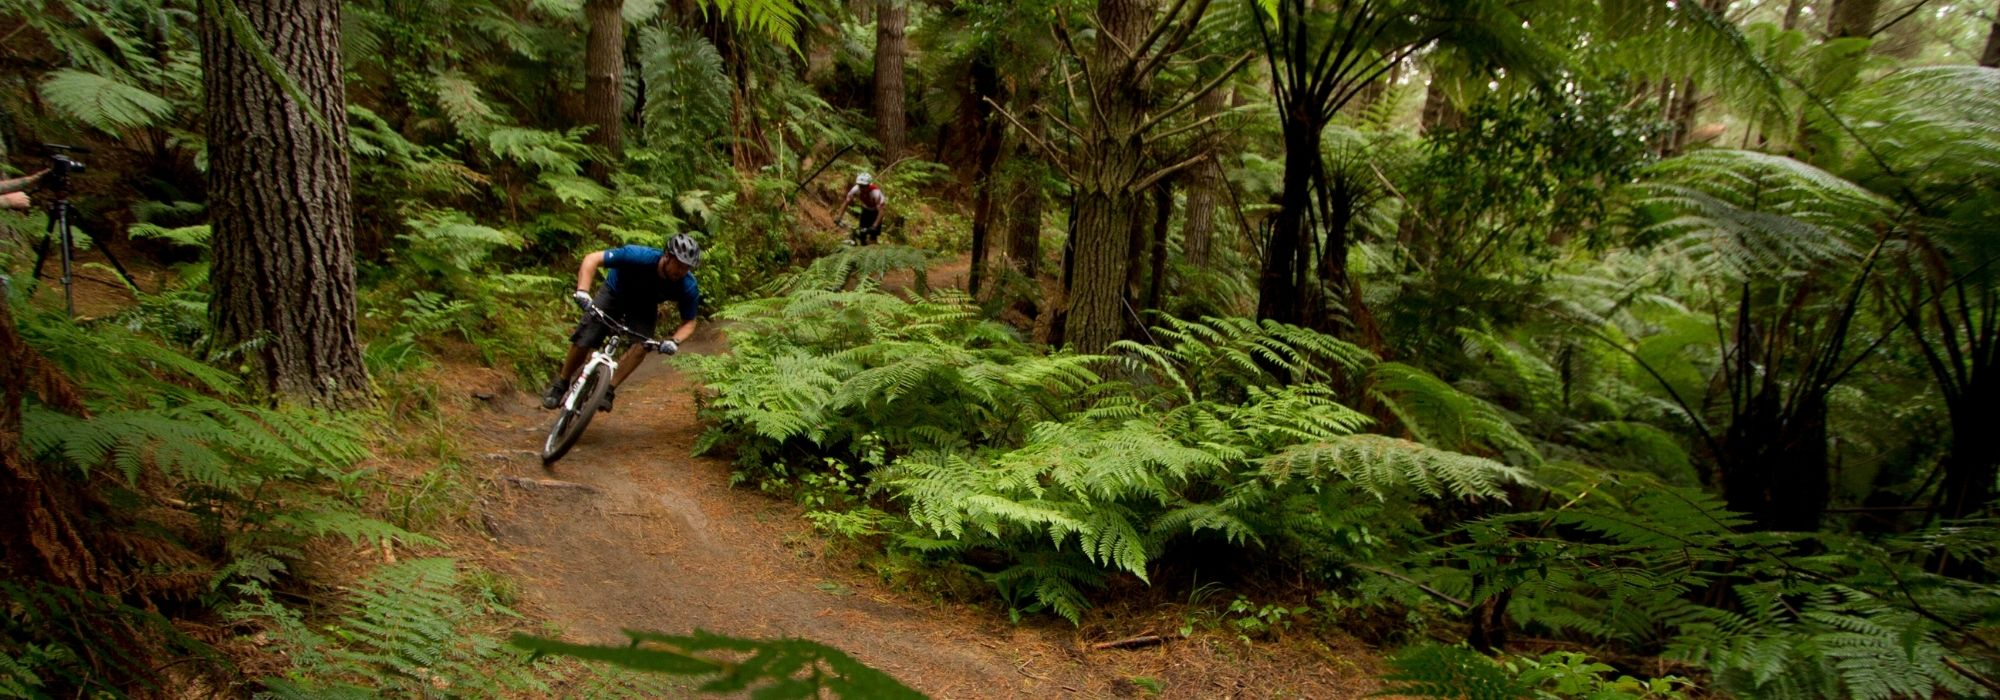 Gear up for a great ride in Rotorua